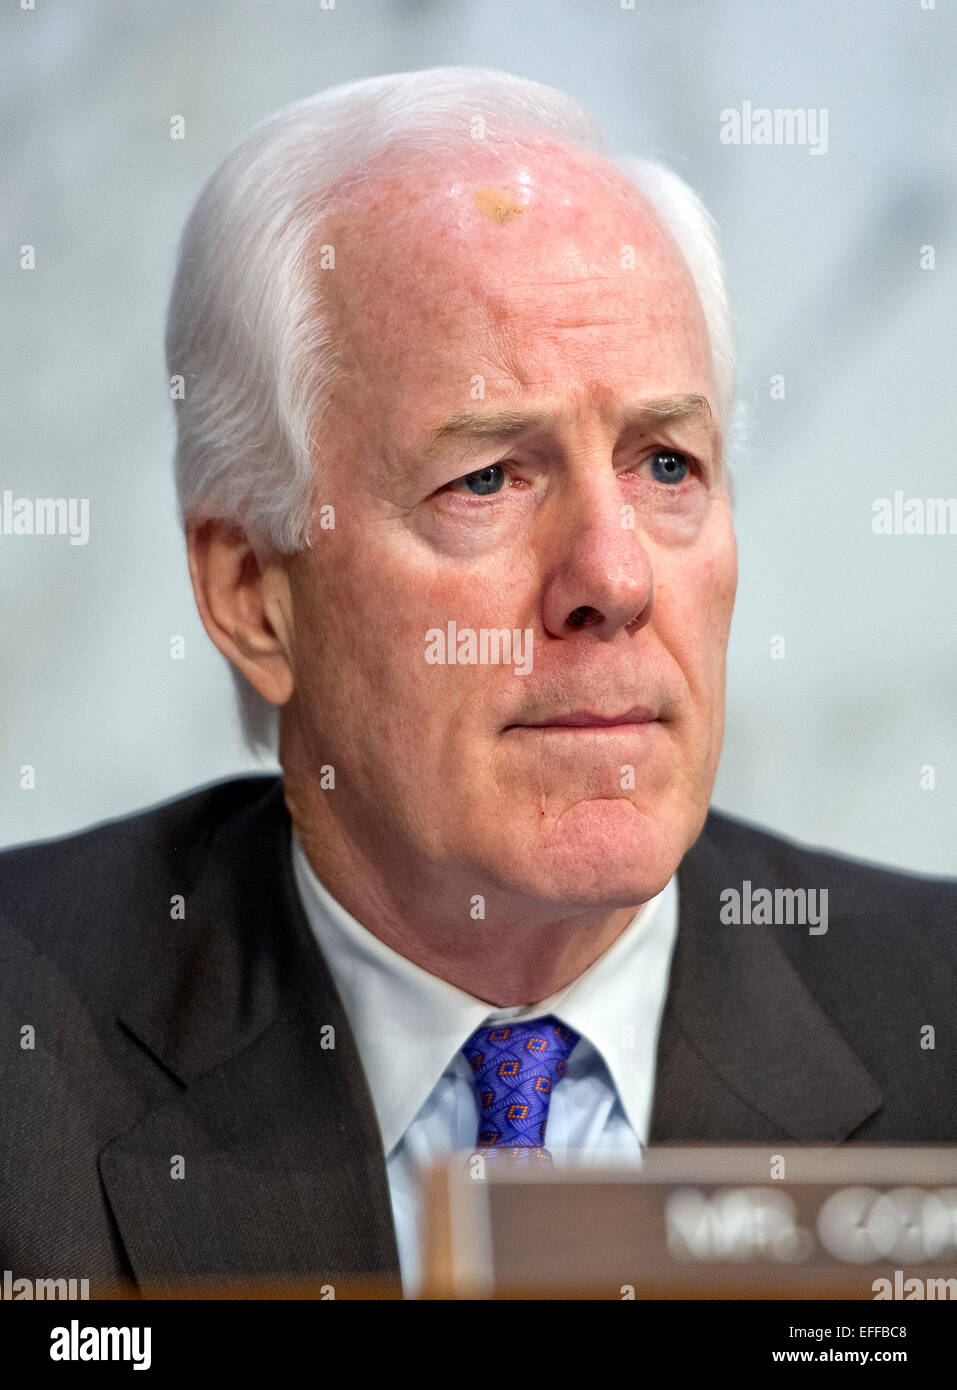 United States Senator John Cornyn (Republican of Texas